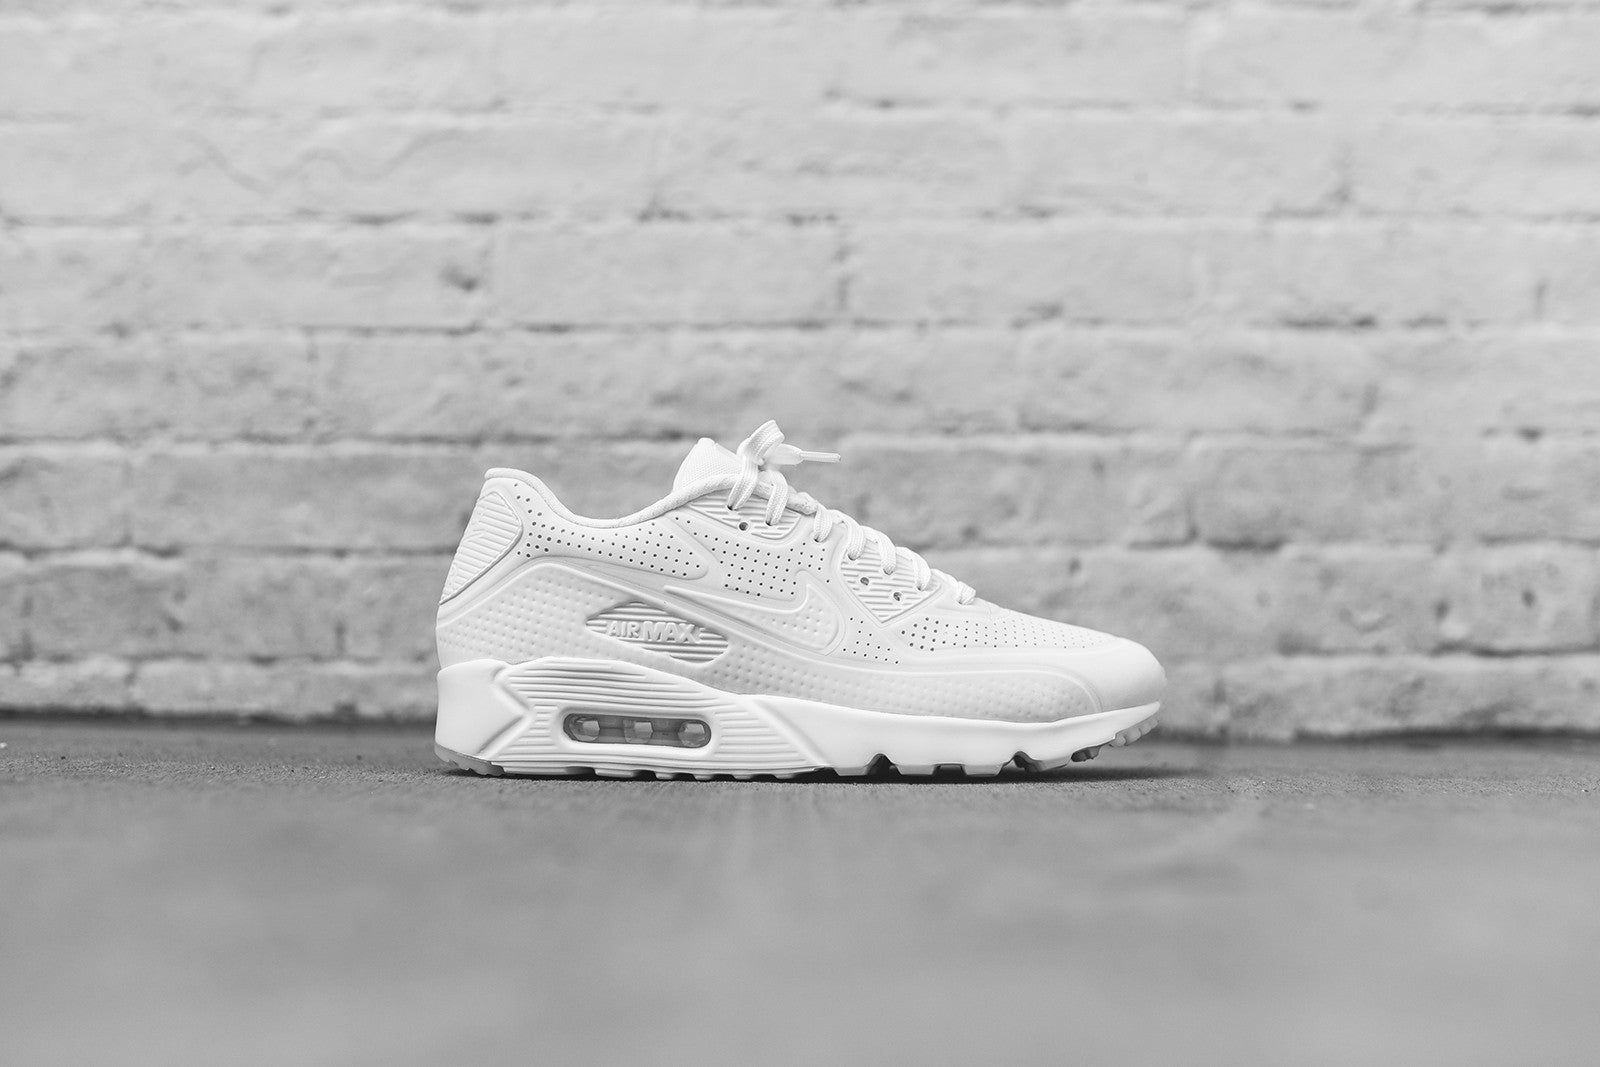 Nike Air Max 90 Ultra Moire - White